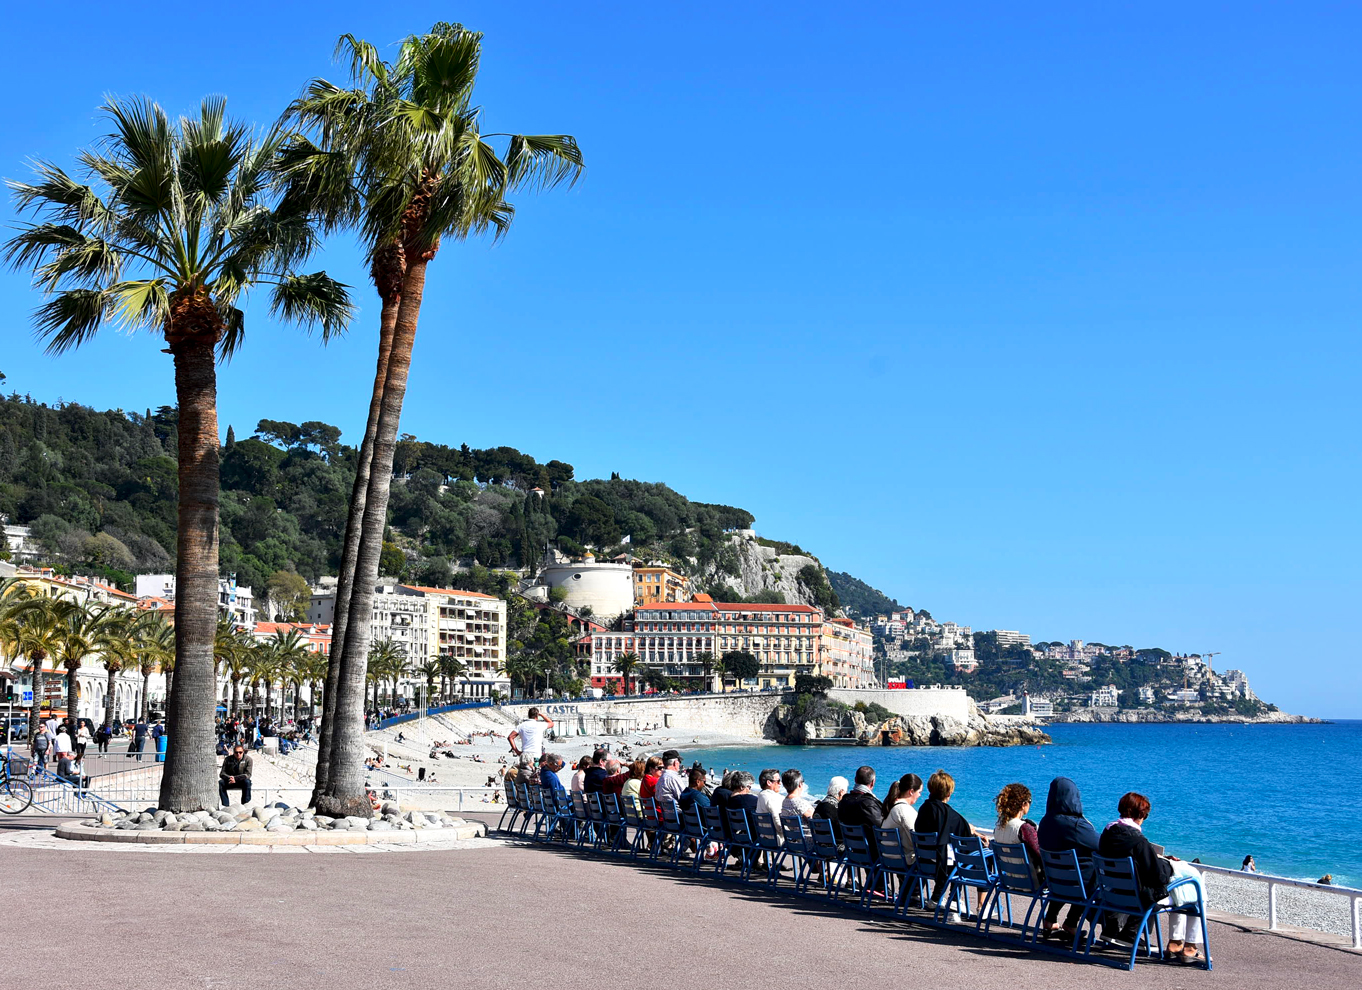 Promenade des Anglais - Credit: Summer Hotel group